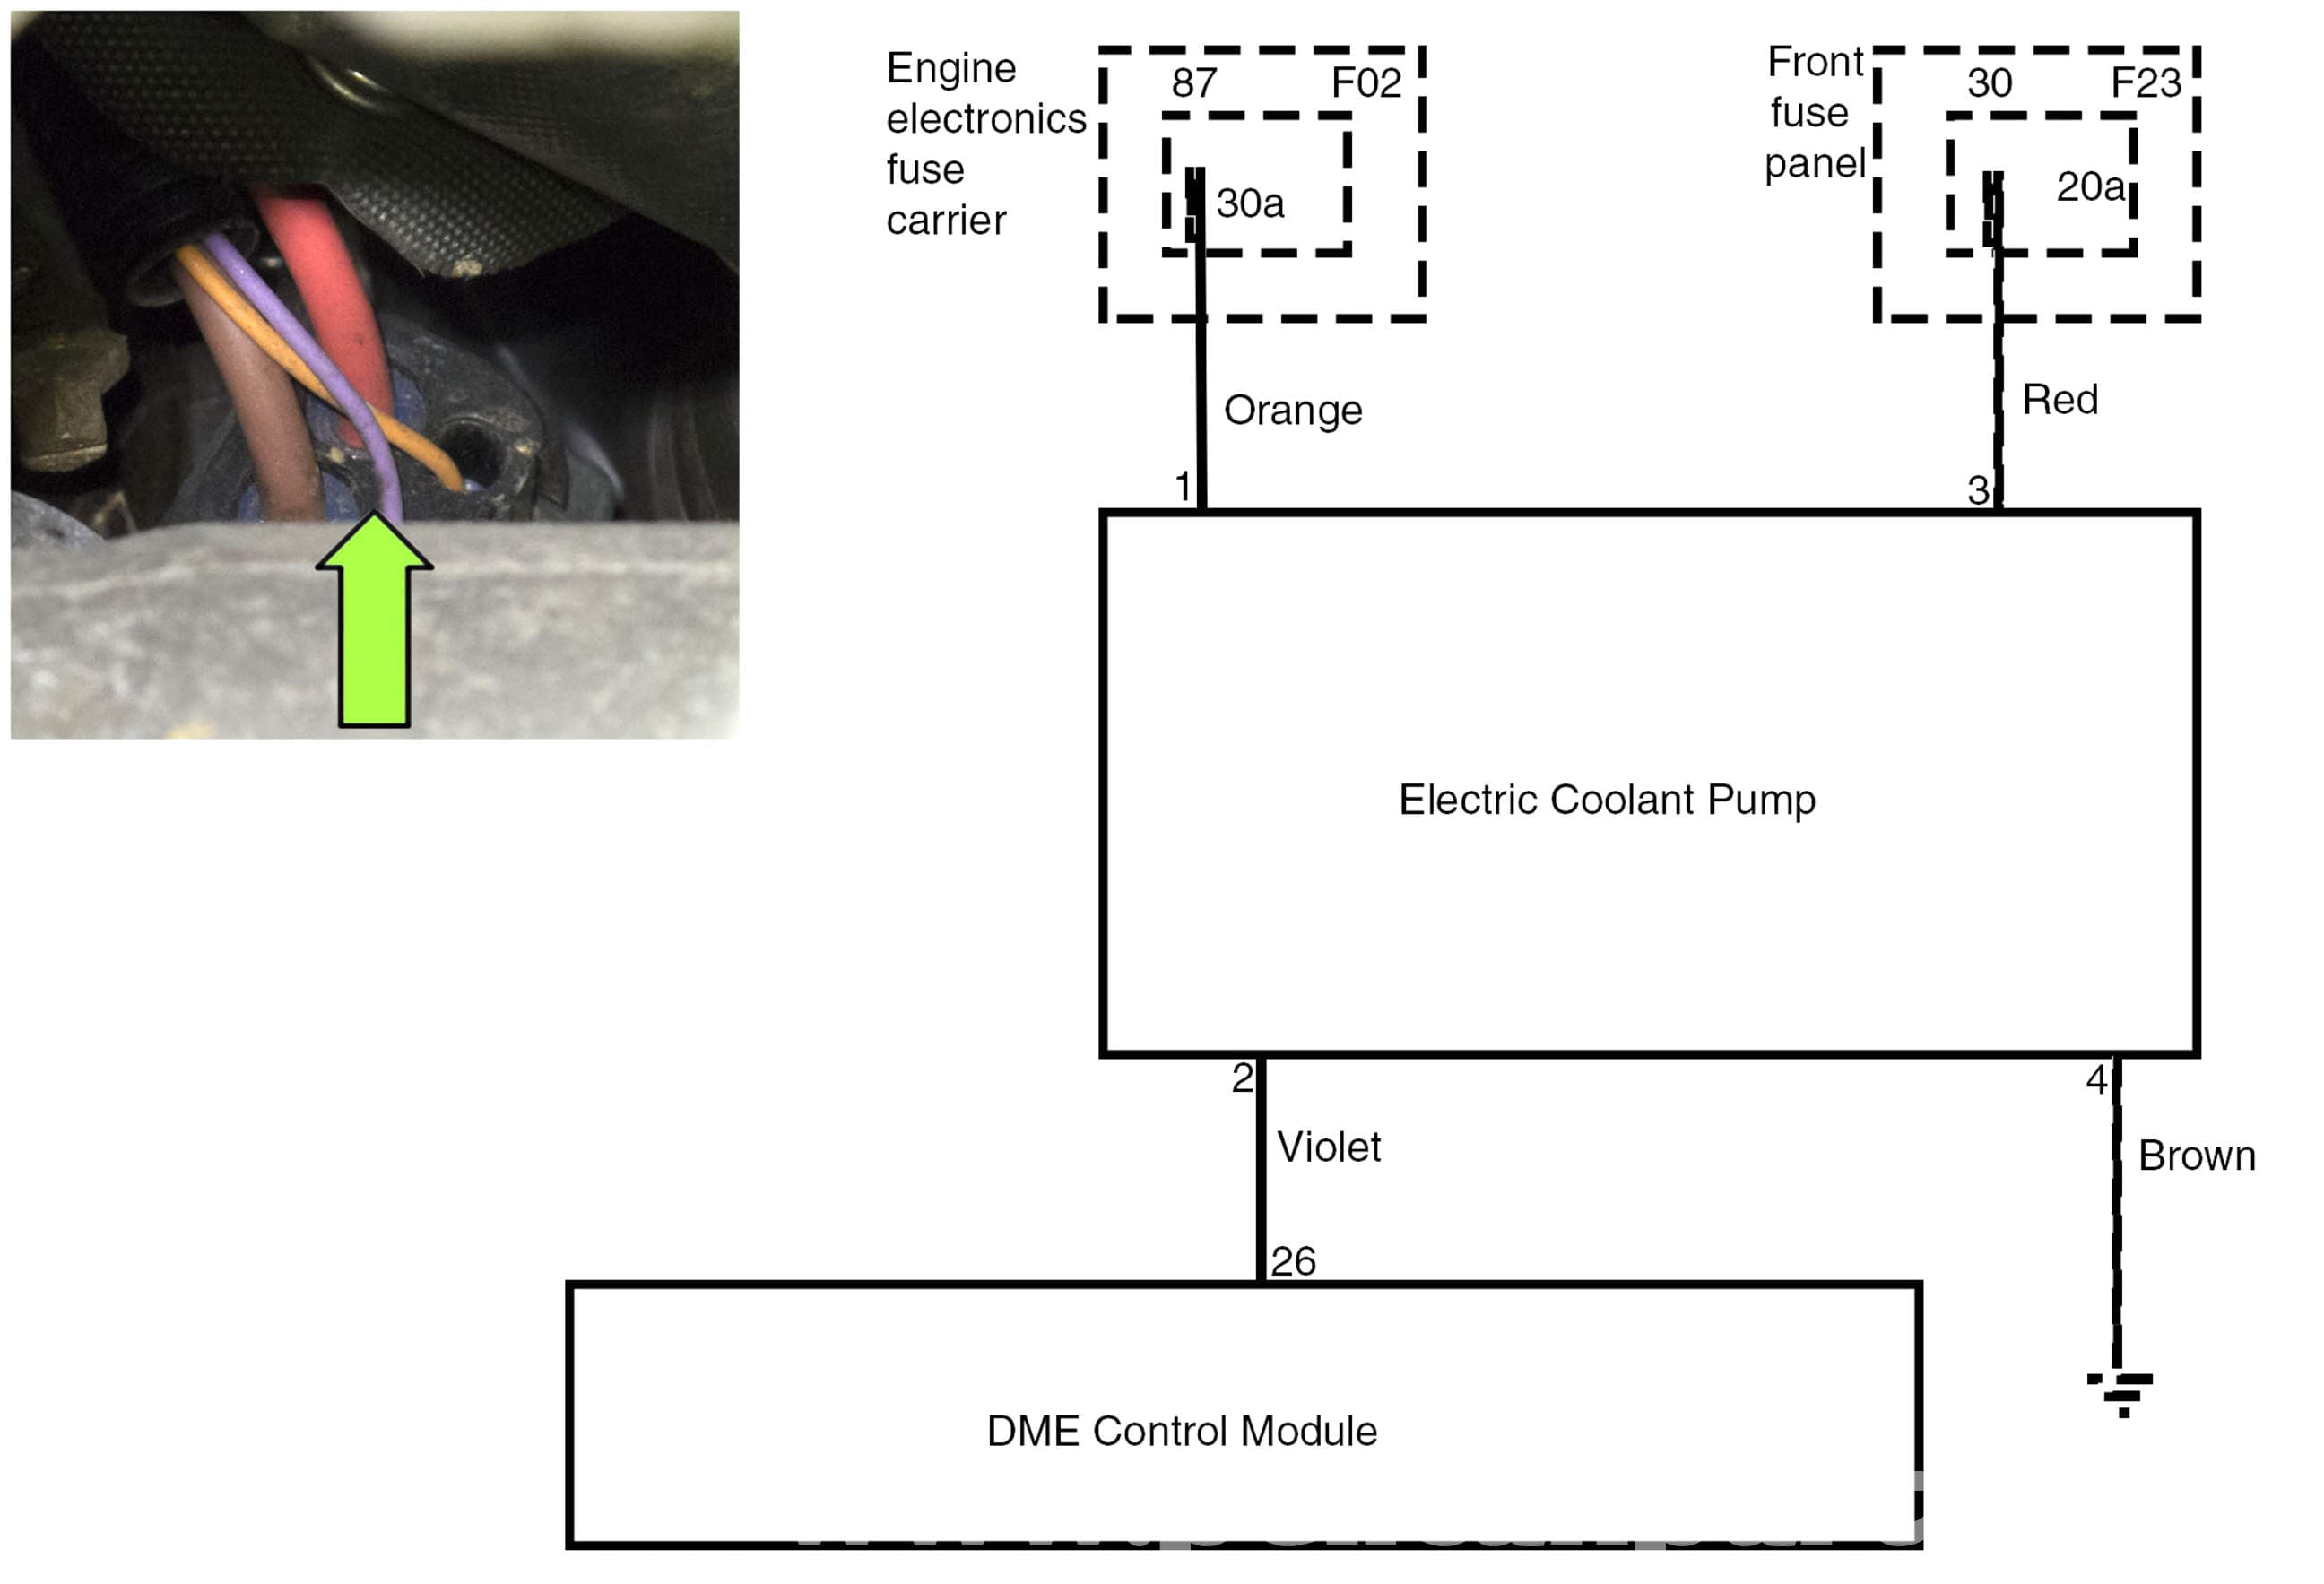 Bmw X1 E84 Wiring Diagram Trusted Engine Schematics Residential Electrical Symbols U2022 2002